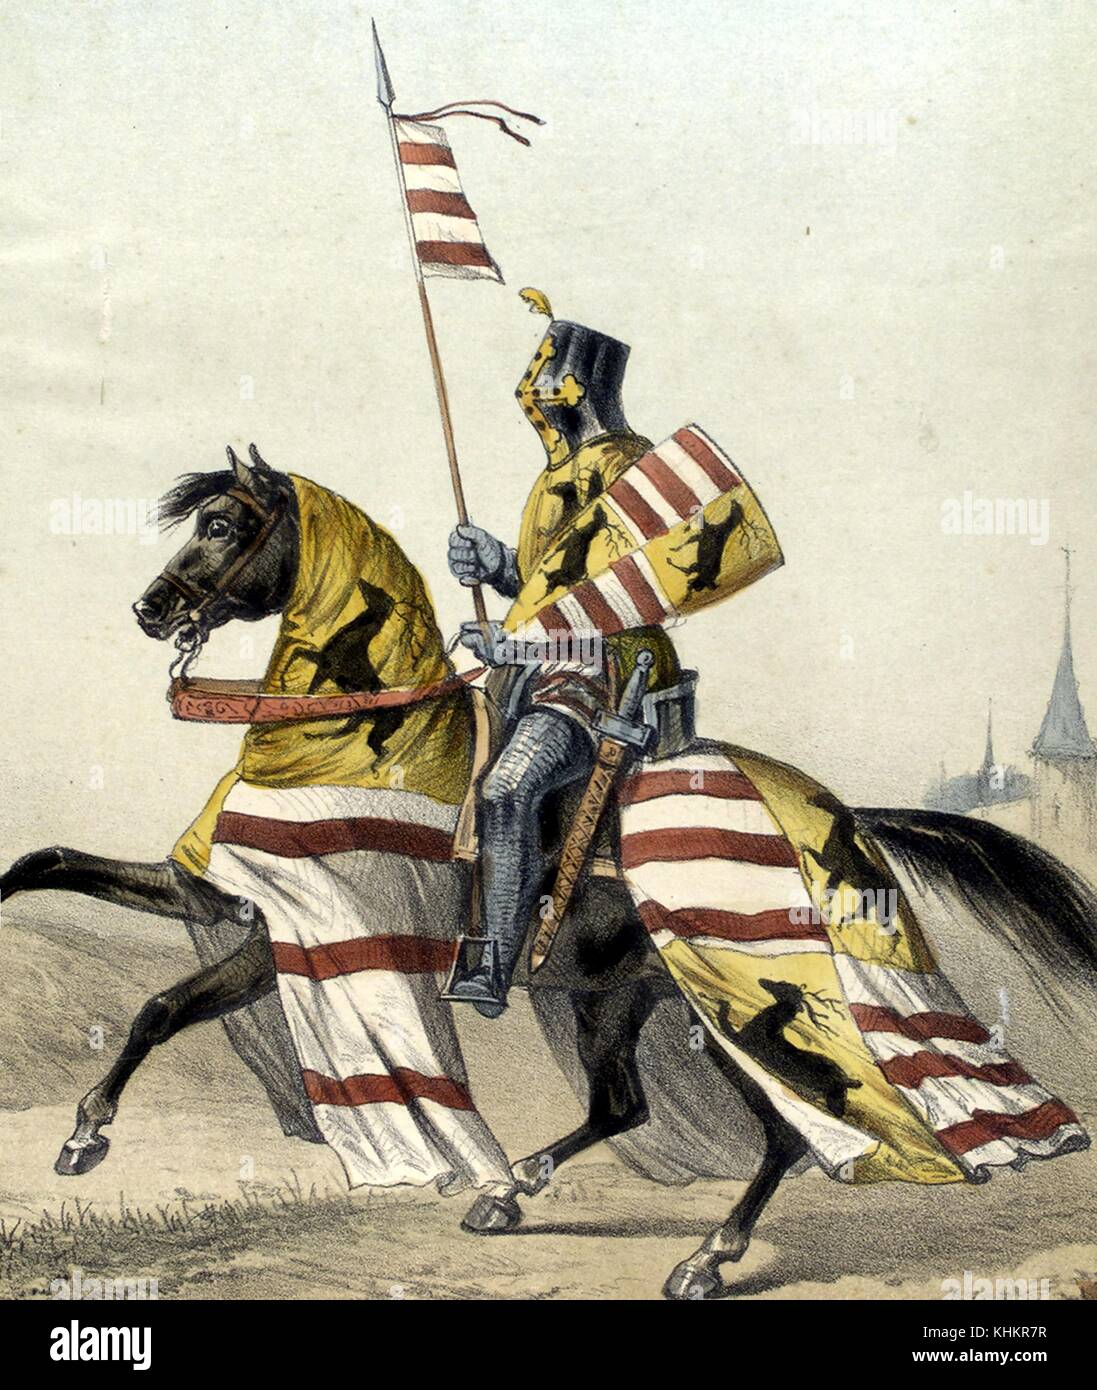 Color lithograph depicting a Spanish Army Baron, with suit of armor, including face shield, holding a flag, from - Stock Image